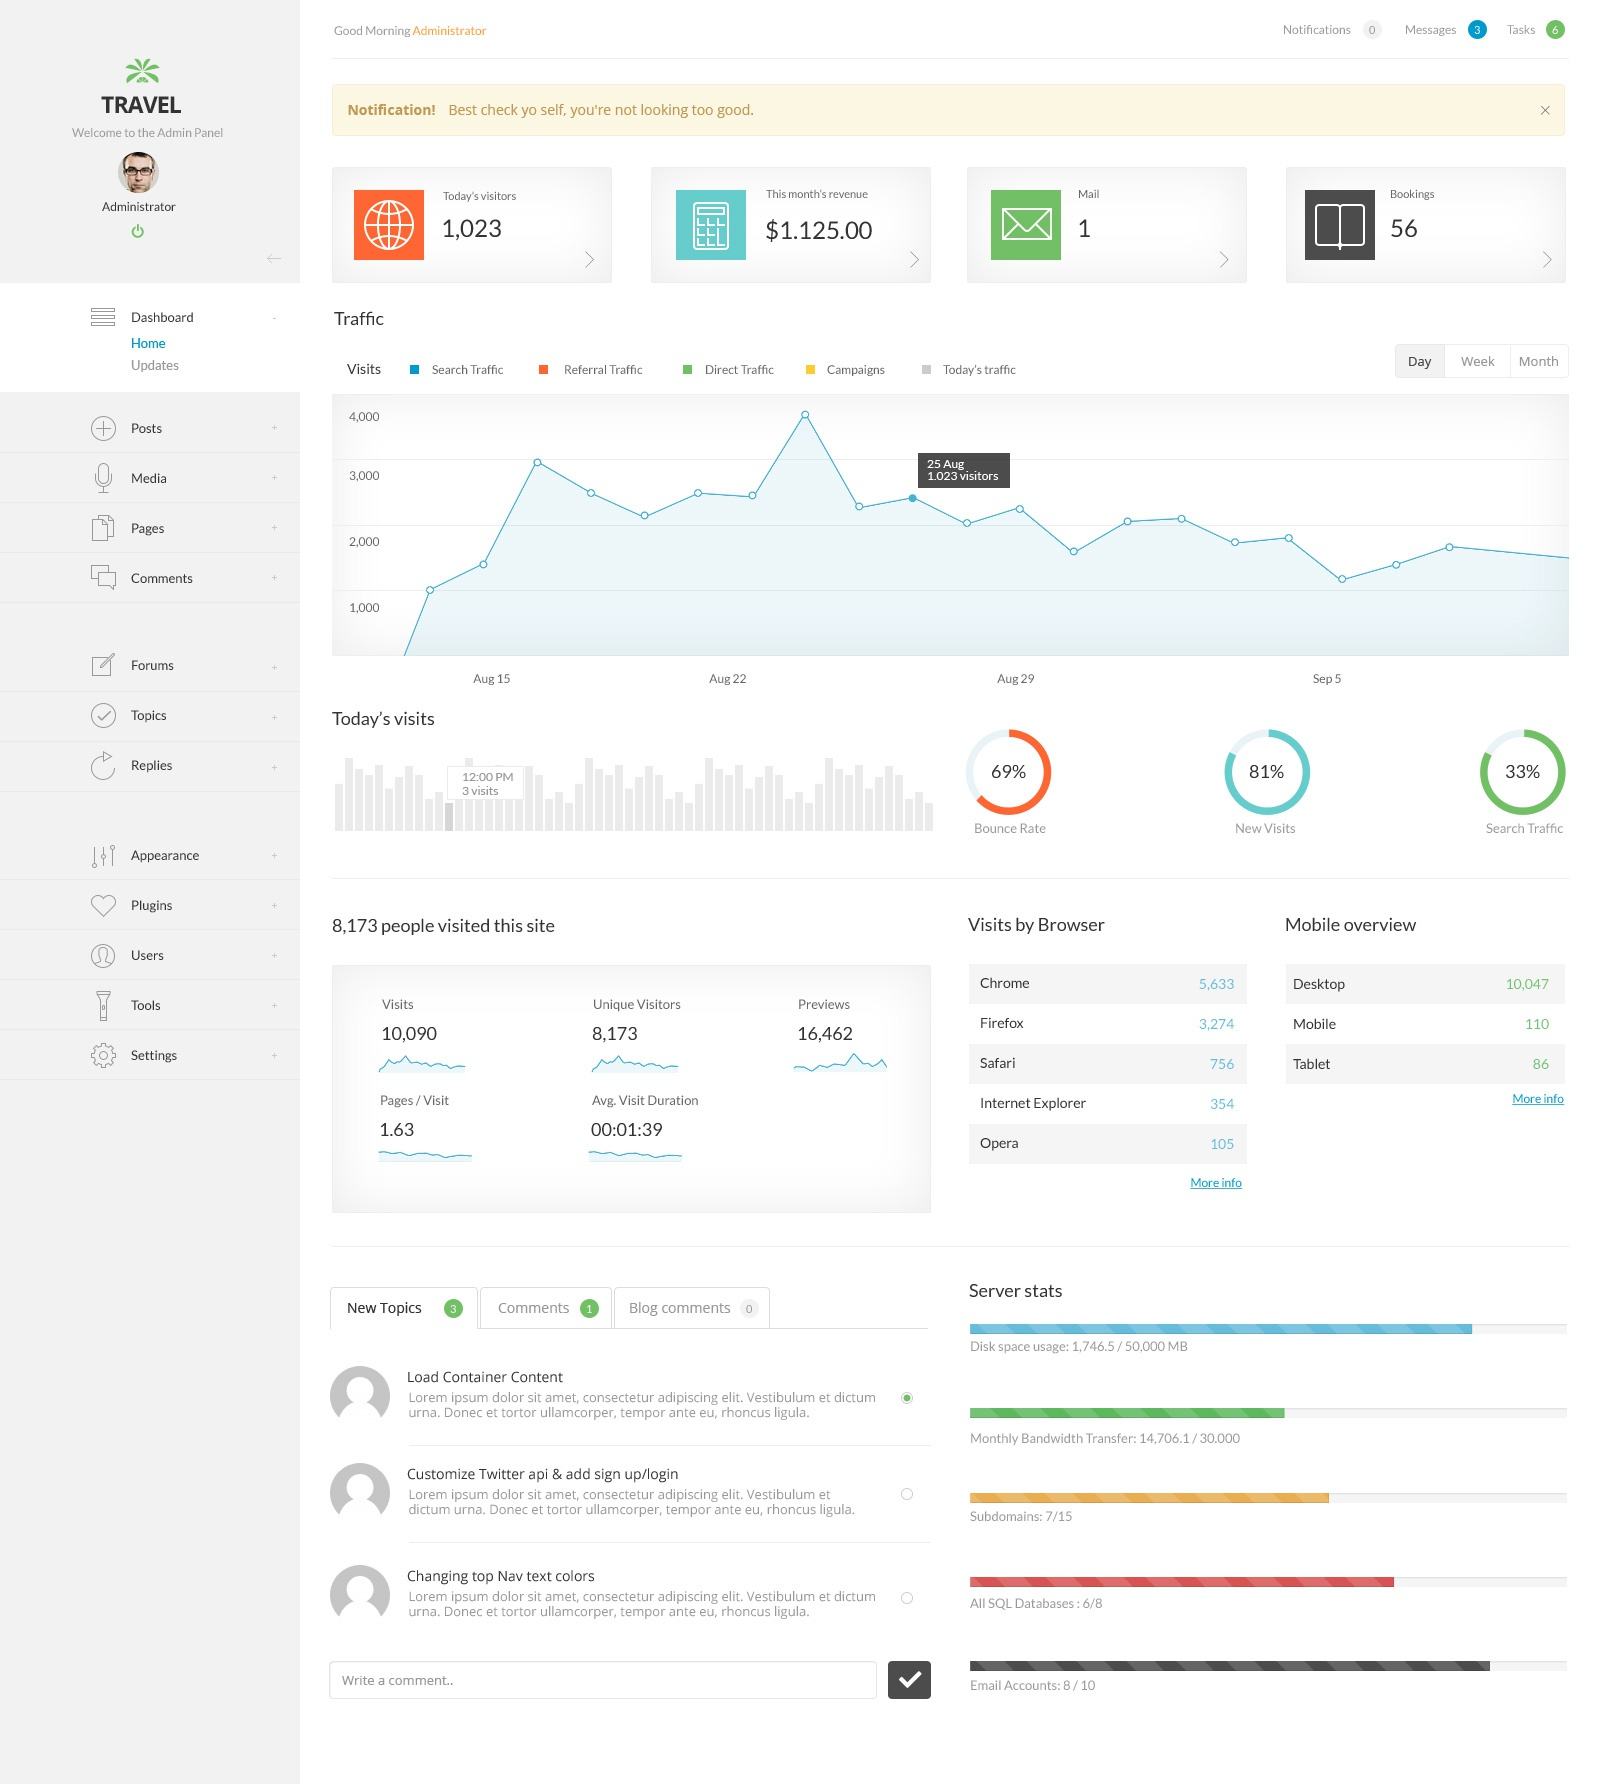 Travelagency dashboard